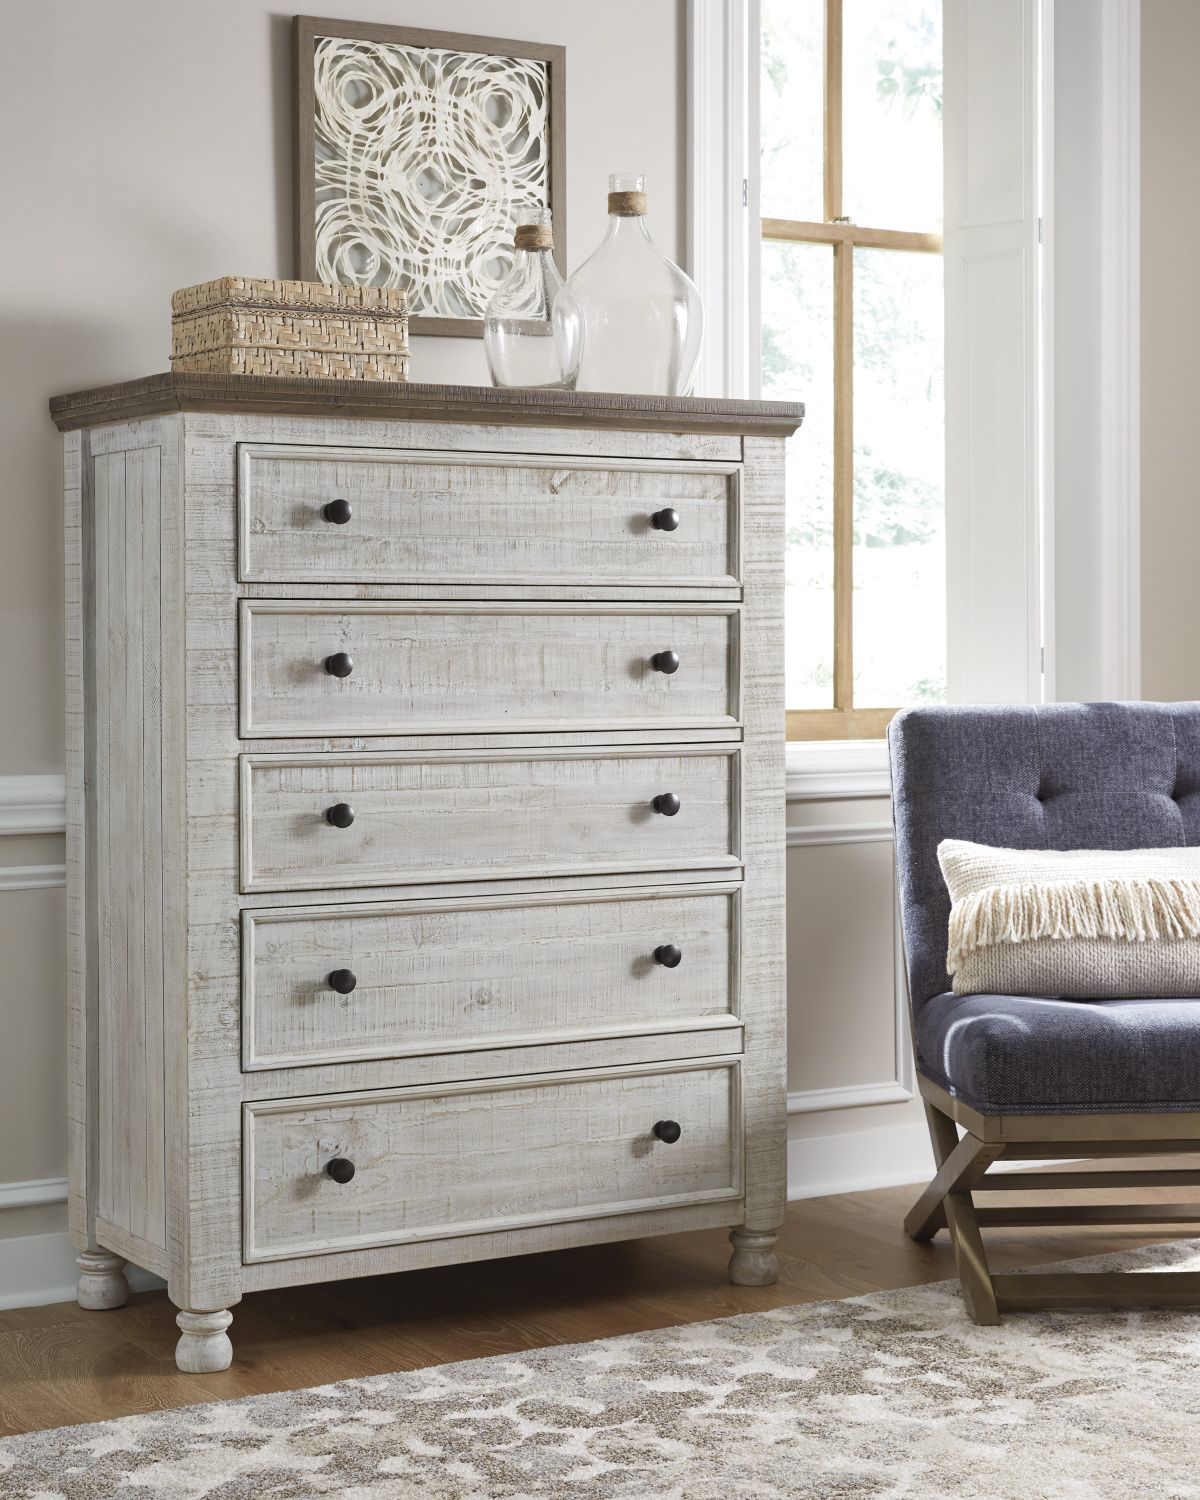 Picture of Havalance Chest of Drawers